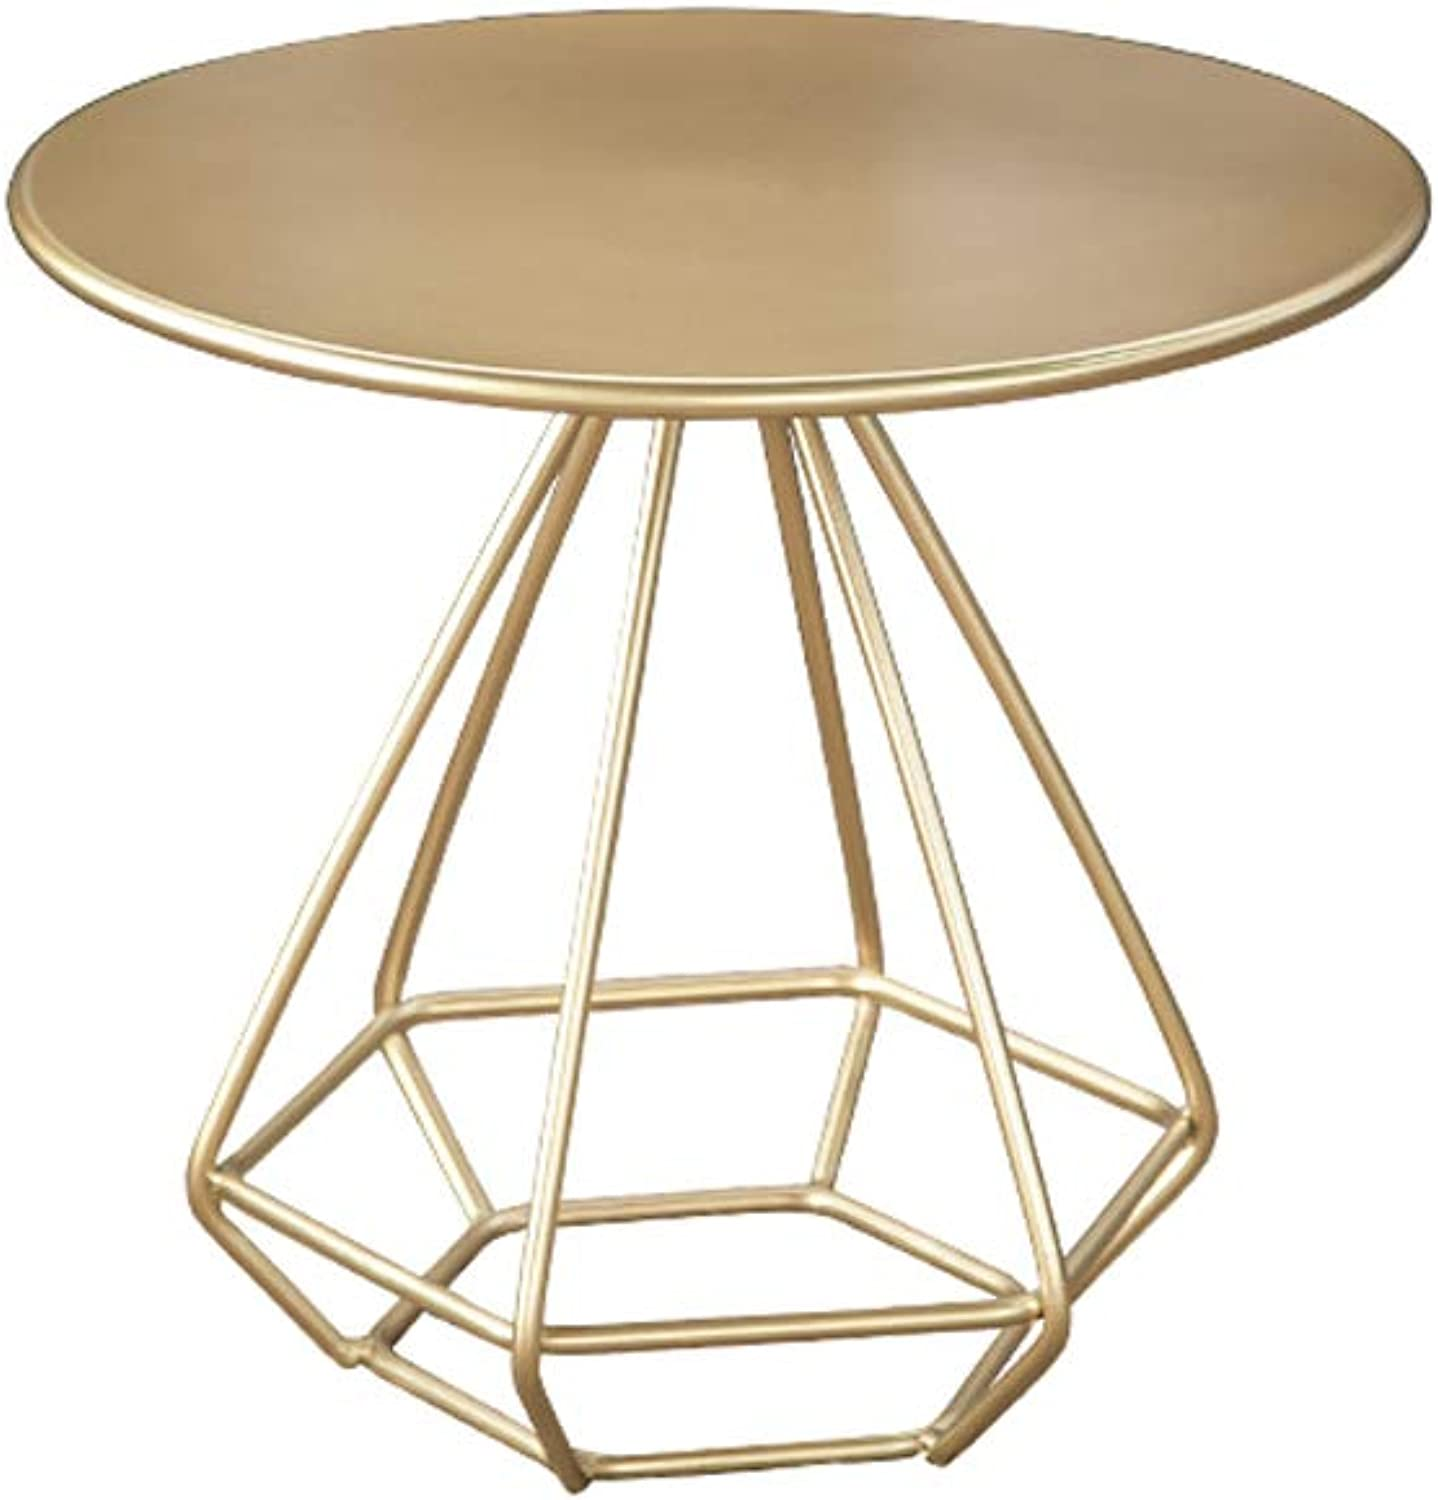 QYSZYG Champagne gold Small Round Table Creative Living Room Parlor Small Coffee Table Simple Mini Coffee Table Wrought Iron Casual Coffee Table Small Coffee Table (Size   50  50 cm)